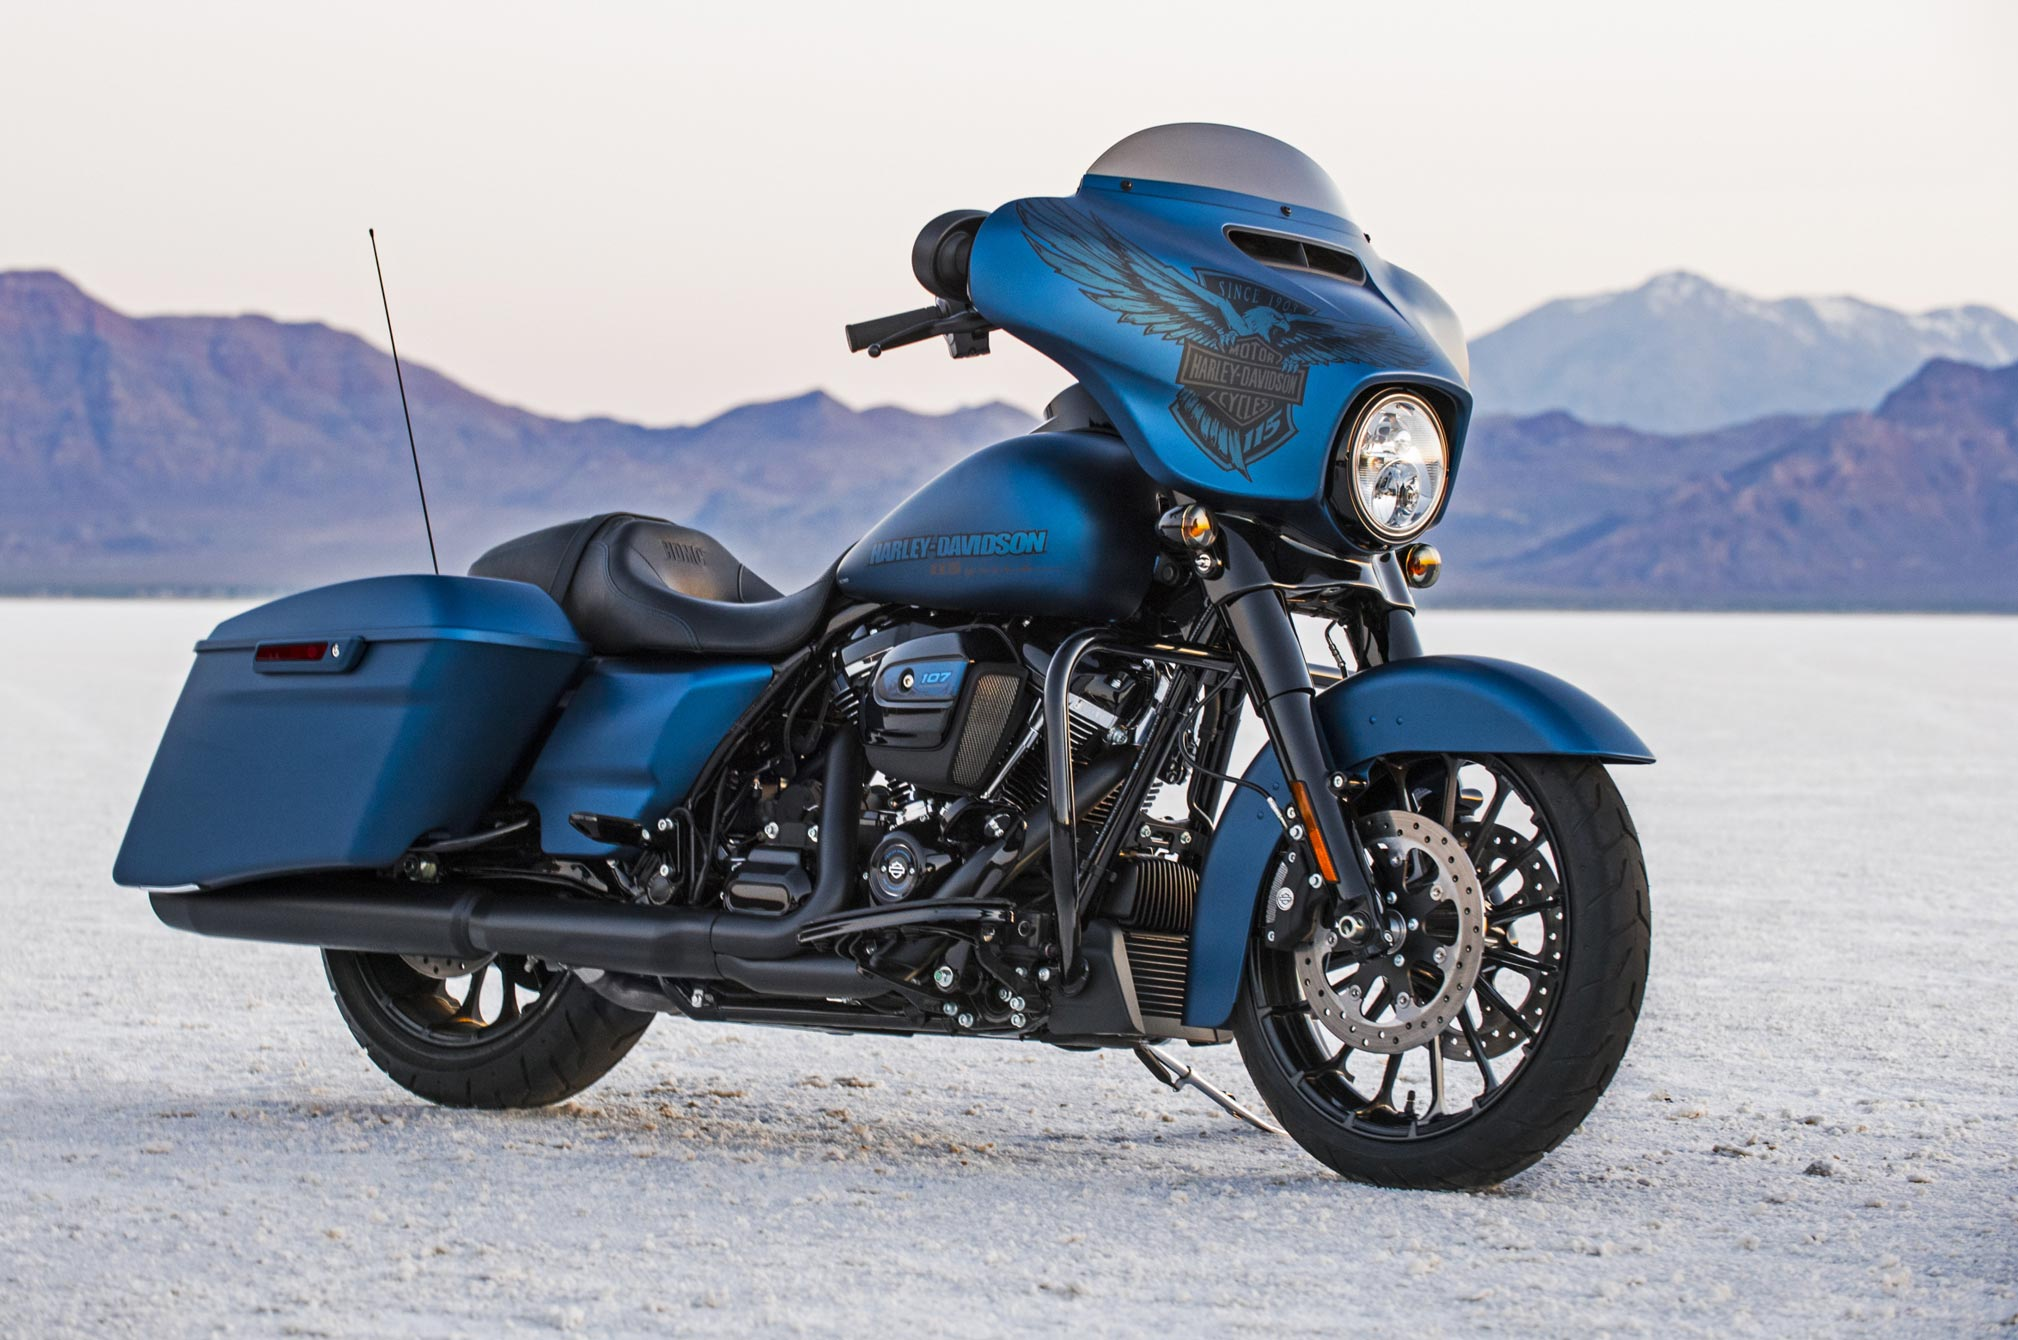 2018 harley davidson street glide special 115th anniversary review totalmotorcycle. Black Bedroom Furniture Sets. Home Design Ideas